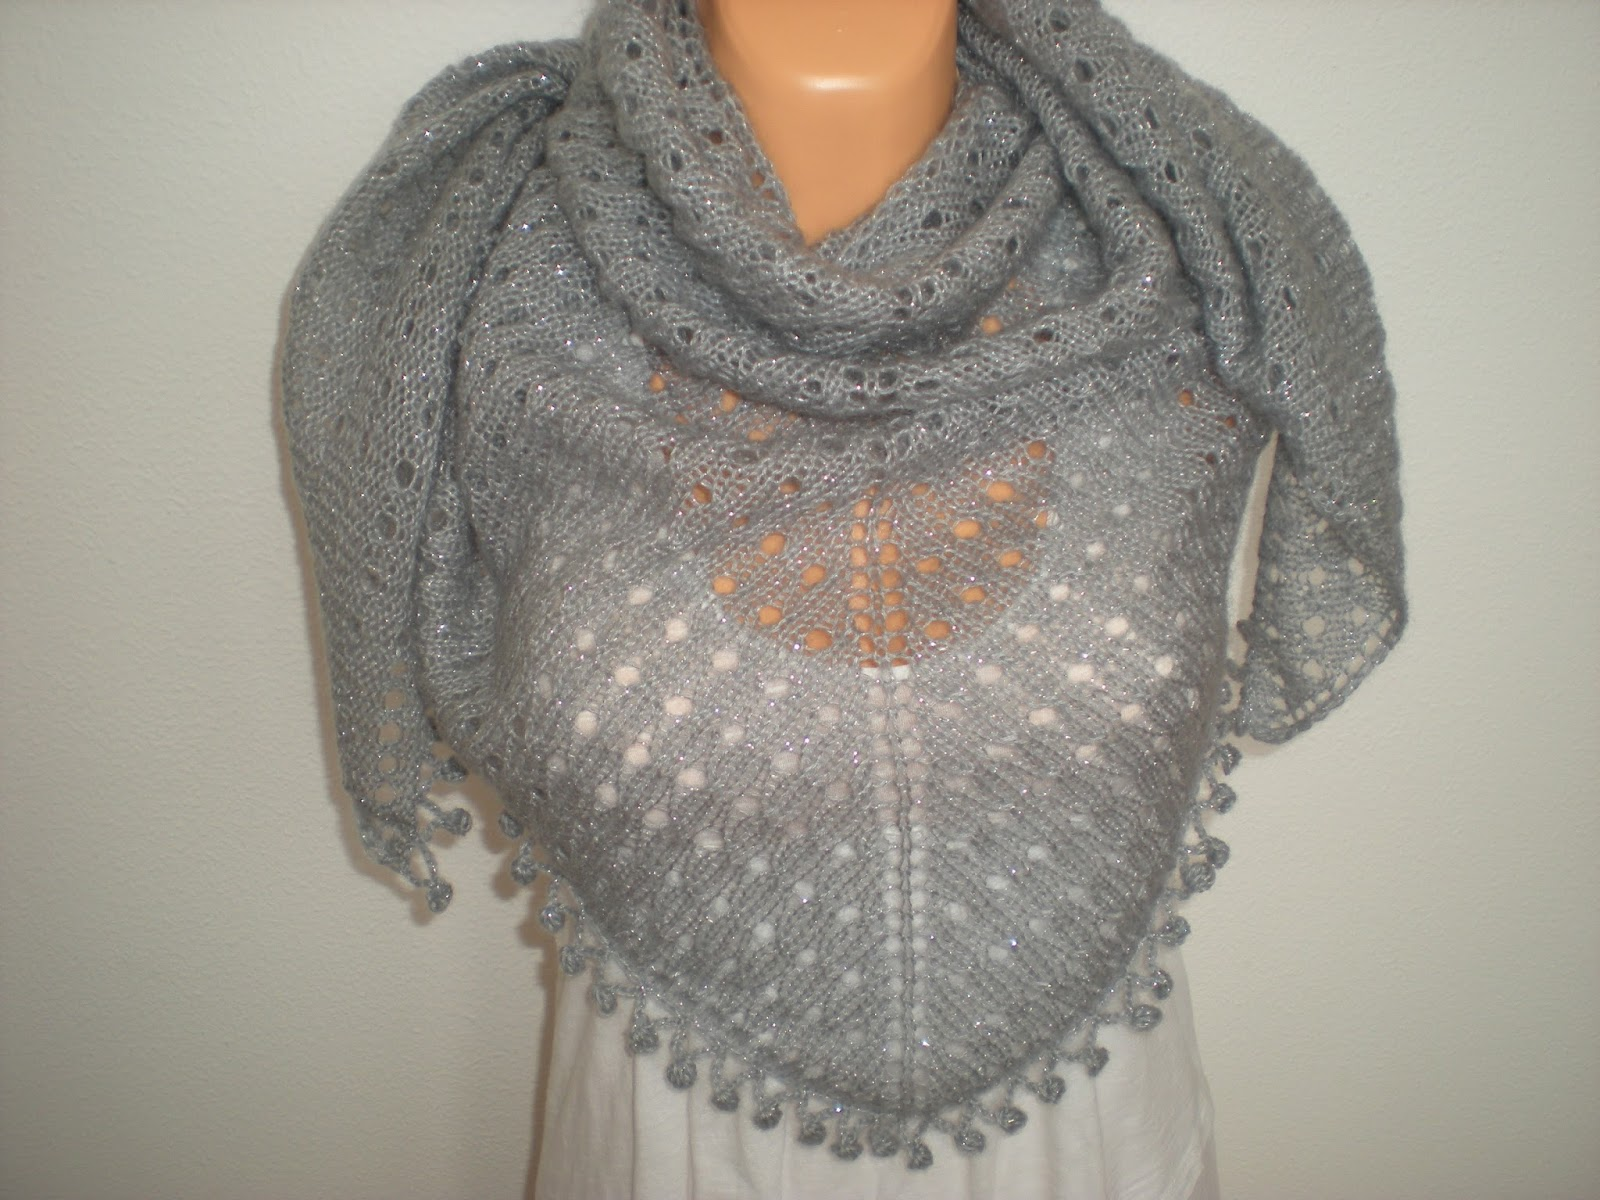 Knitting Edges Together : Emmhouse knitted shawl free pattern